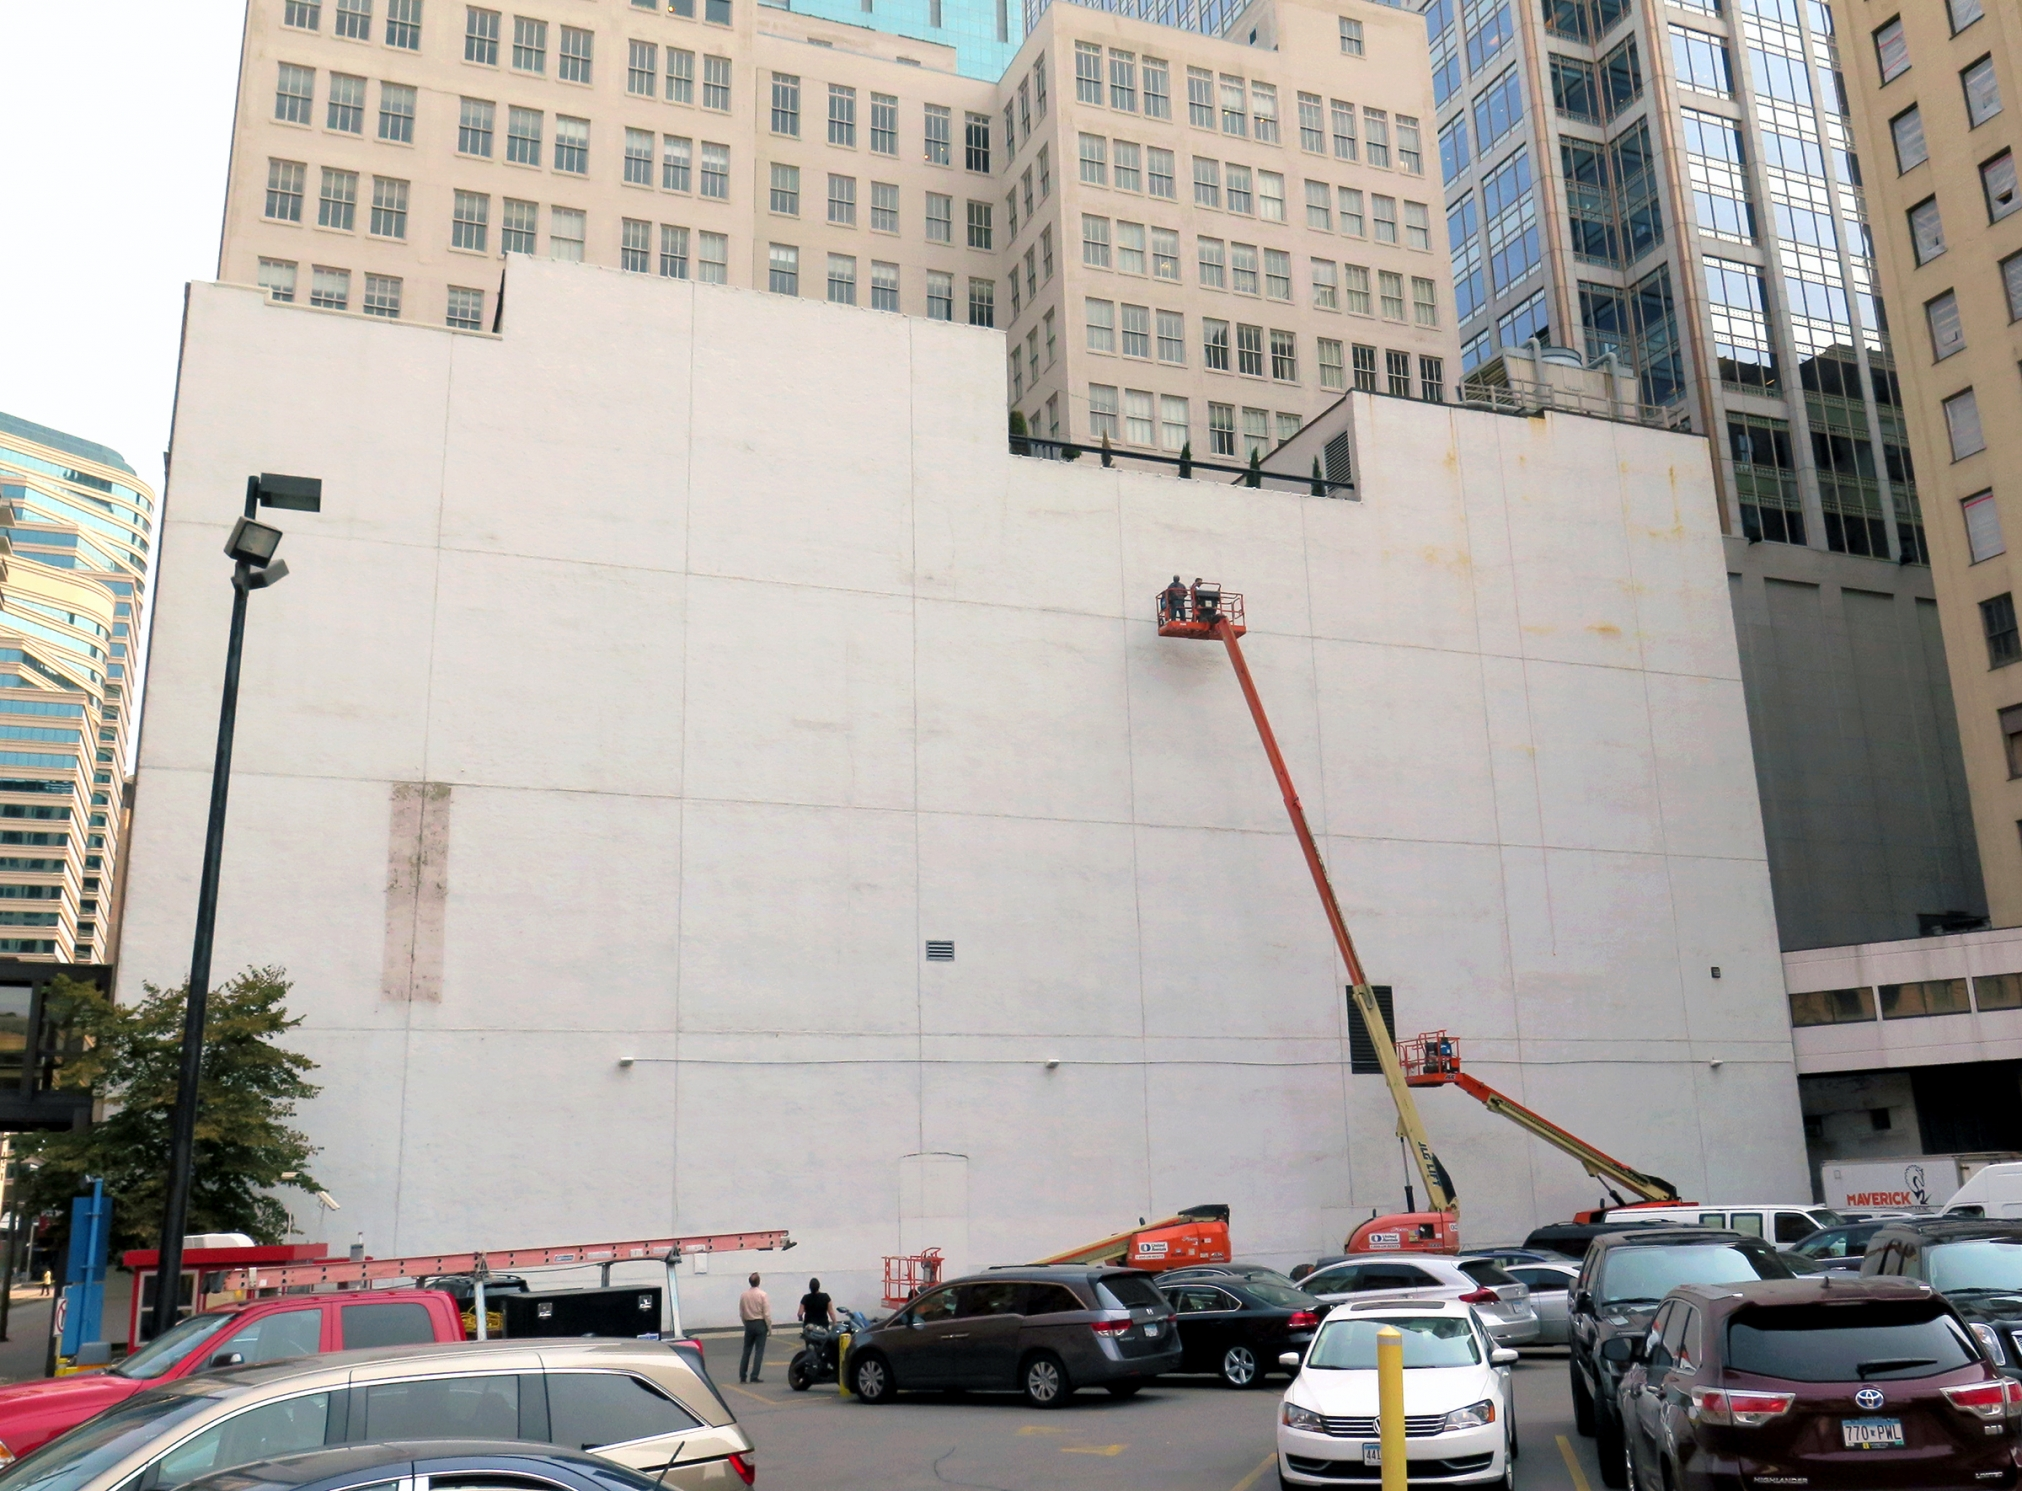 The blank white wall facing the corner of 5th and Hennepin Ave will become the 'canvas' for a mural by Brazillian artist Kobra- with an image of Bob Dylan. Photo taken 8/25 as work begins.